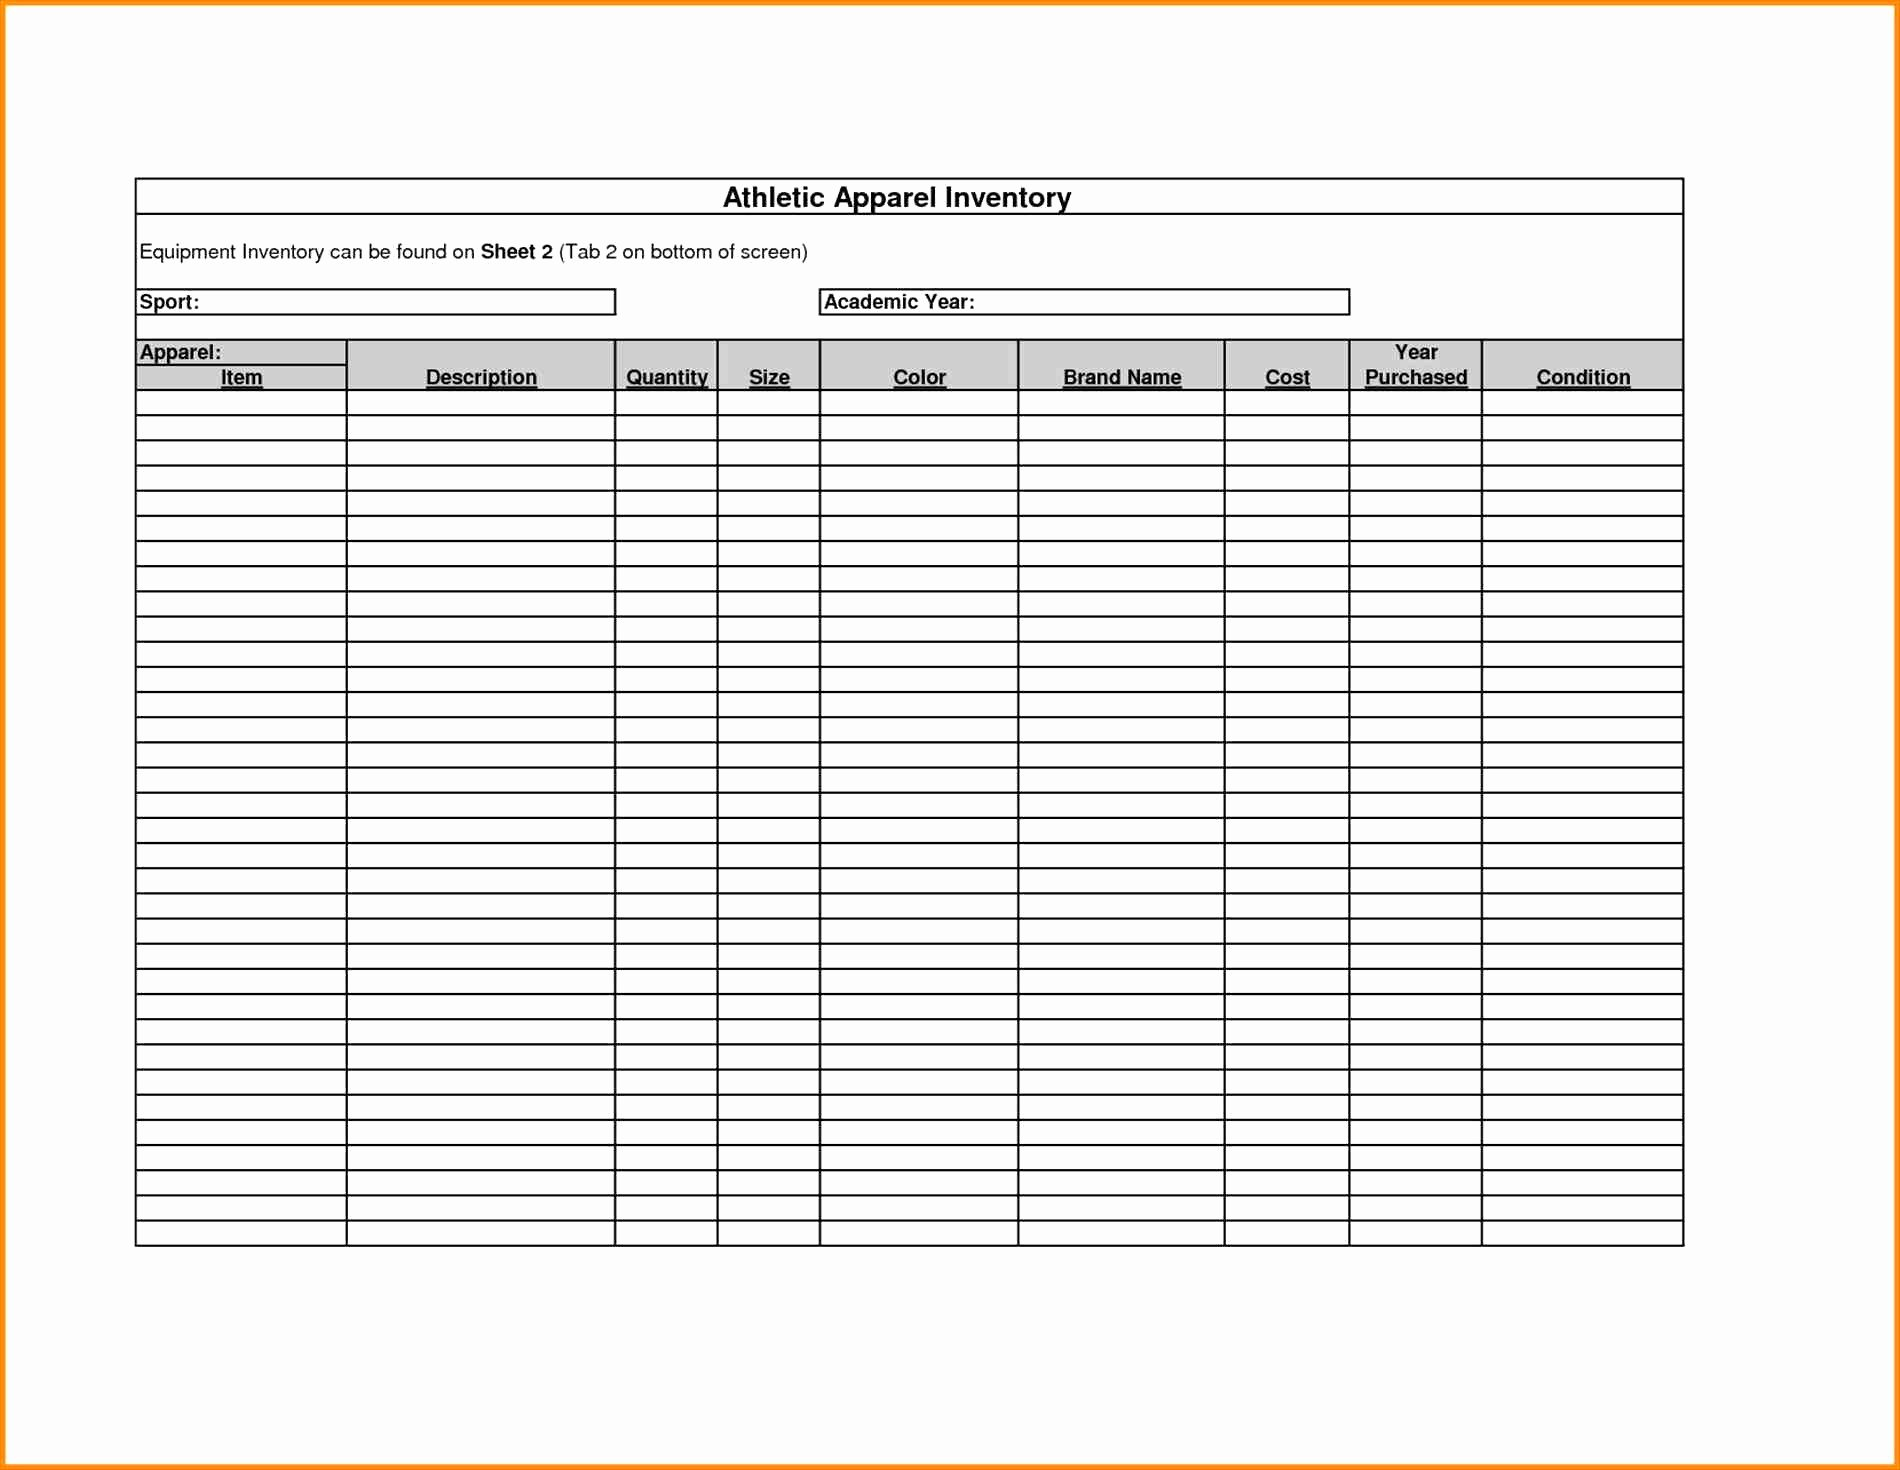 Small Business Inventory Spreadsheet Template Awesome Small Business Inventory Spreadsheet Template New